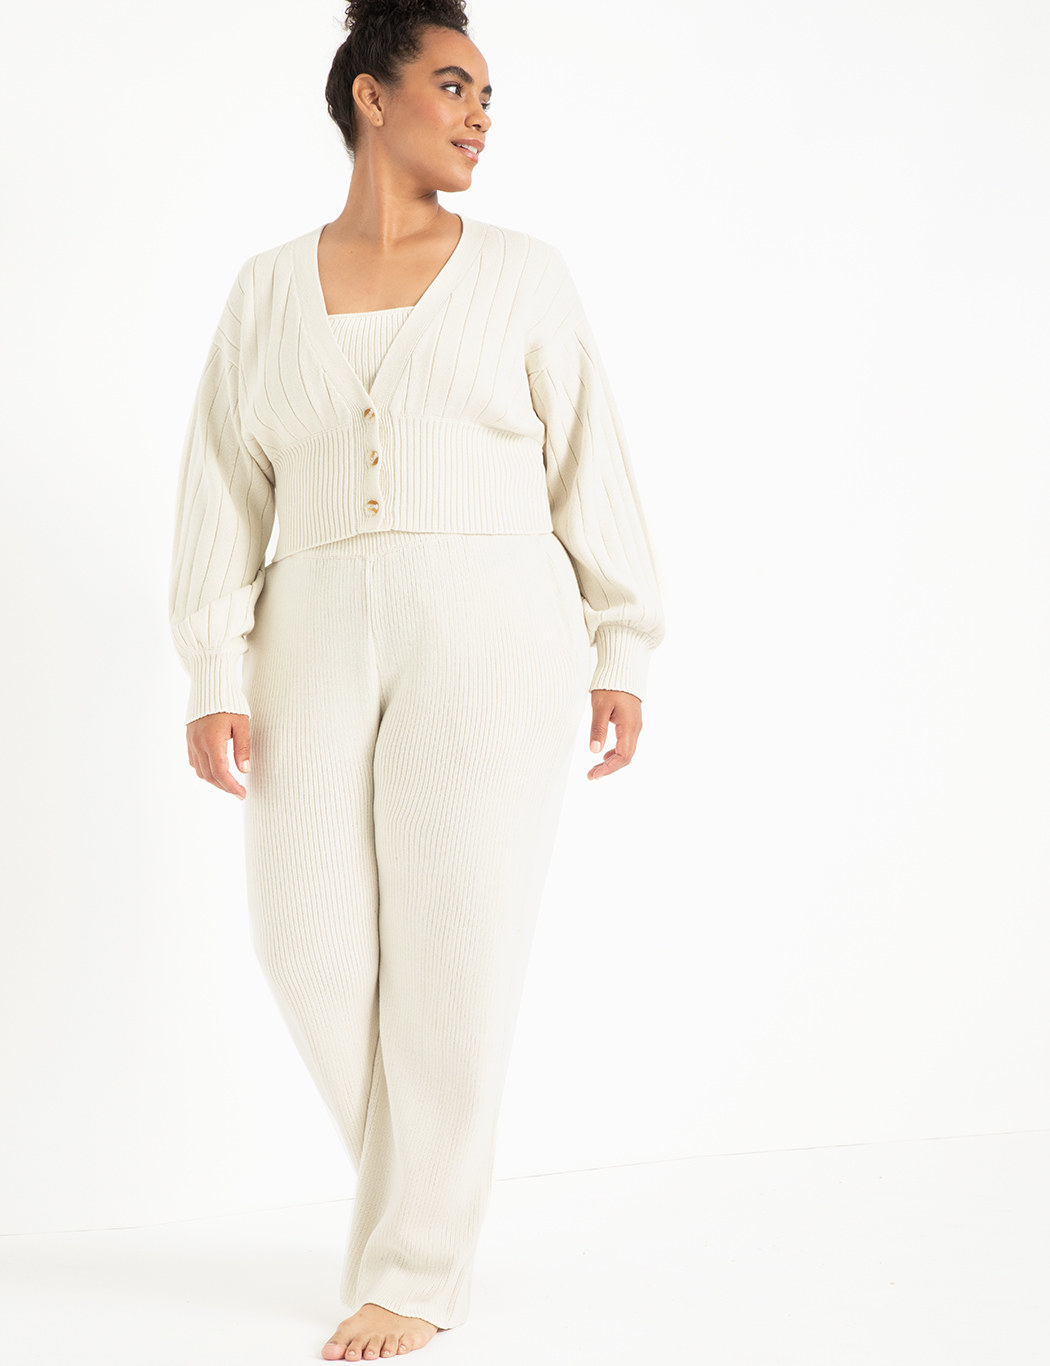 a plus size model wearing the complete knit set in antique white